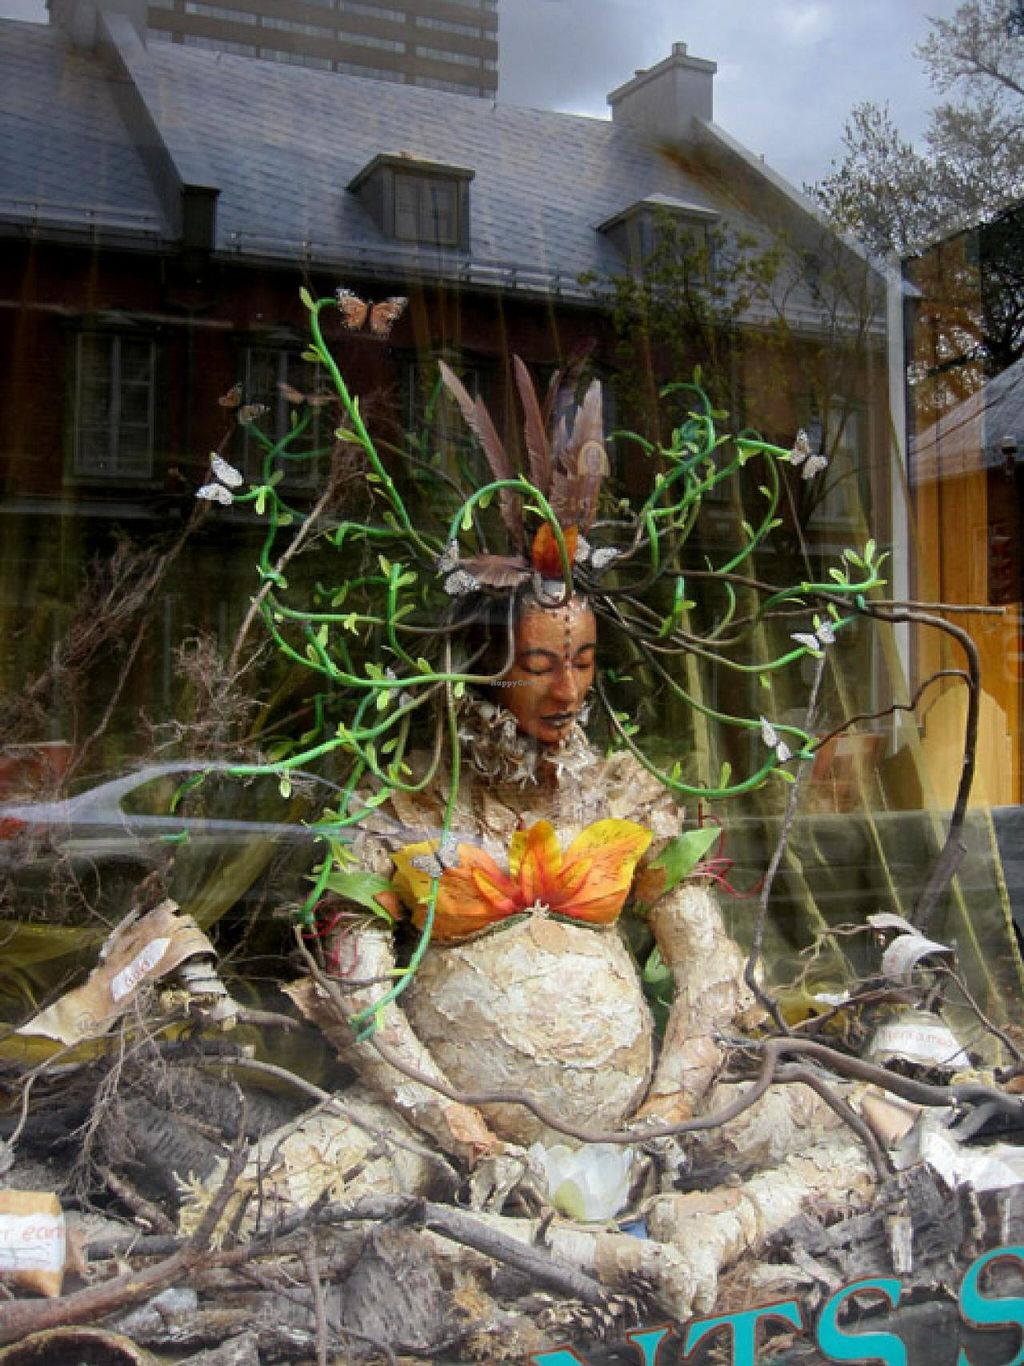 "Photo of Le Crac and La Carotte Joyeuse  by <a href=""/members/profile/Babette"">Babette</a> <br/>Artistic storefront <br/> May 20, 2015  - <a href='/contact/abuse/image/1393/102878'>Report</a>"